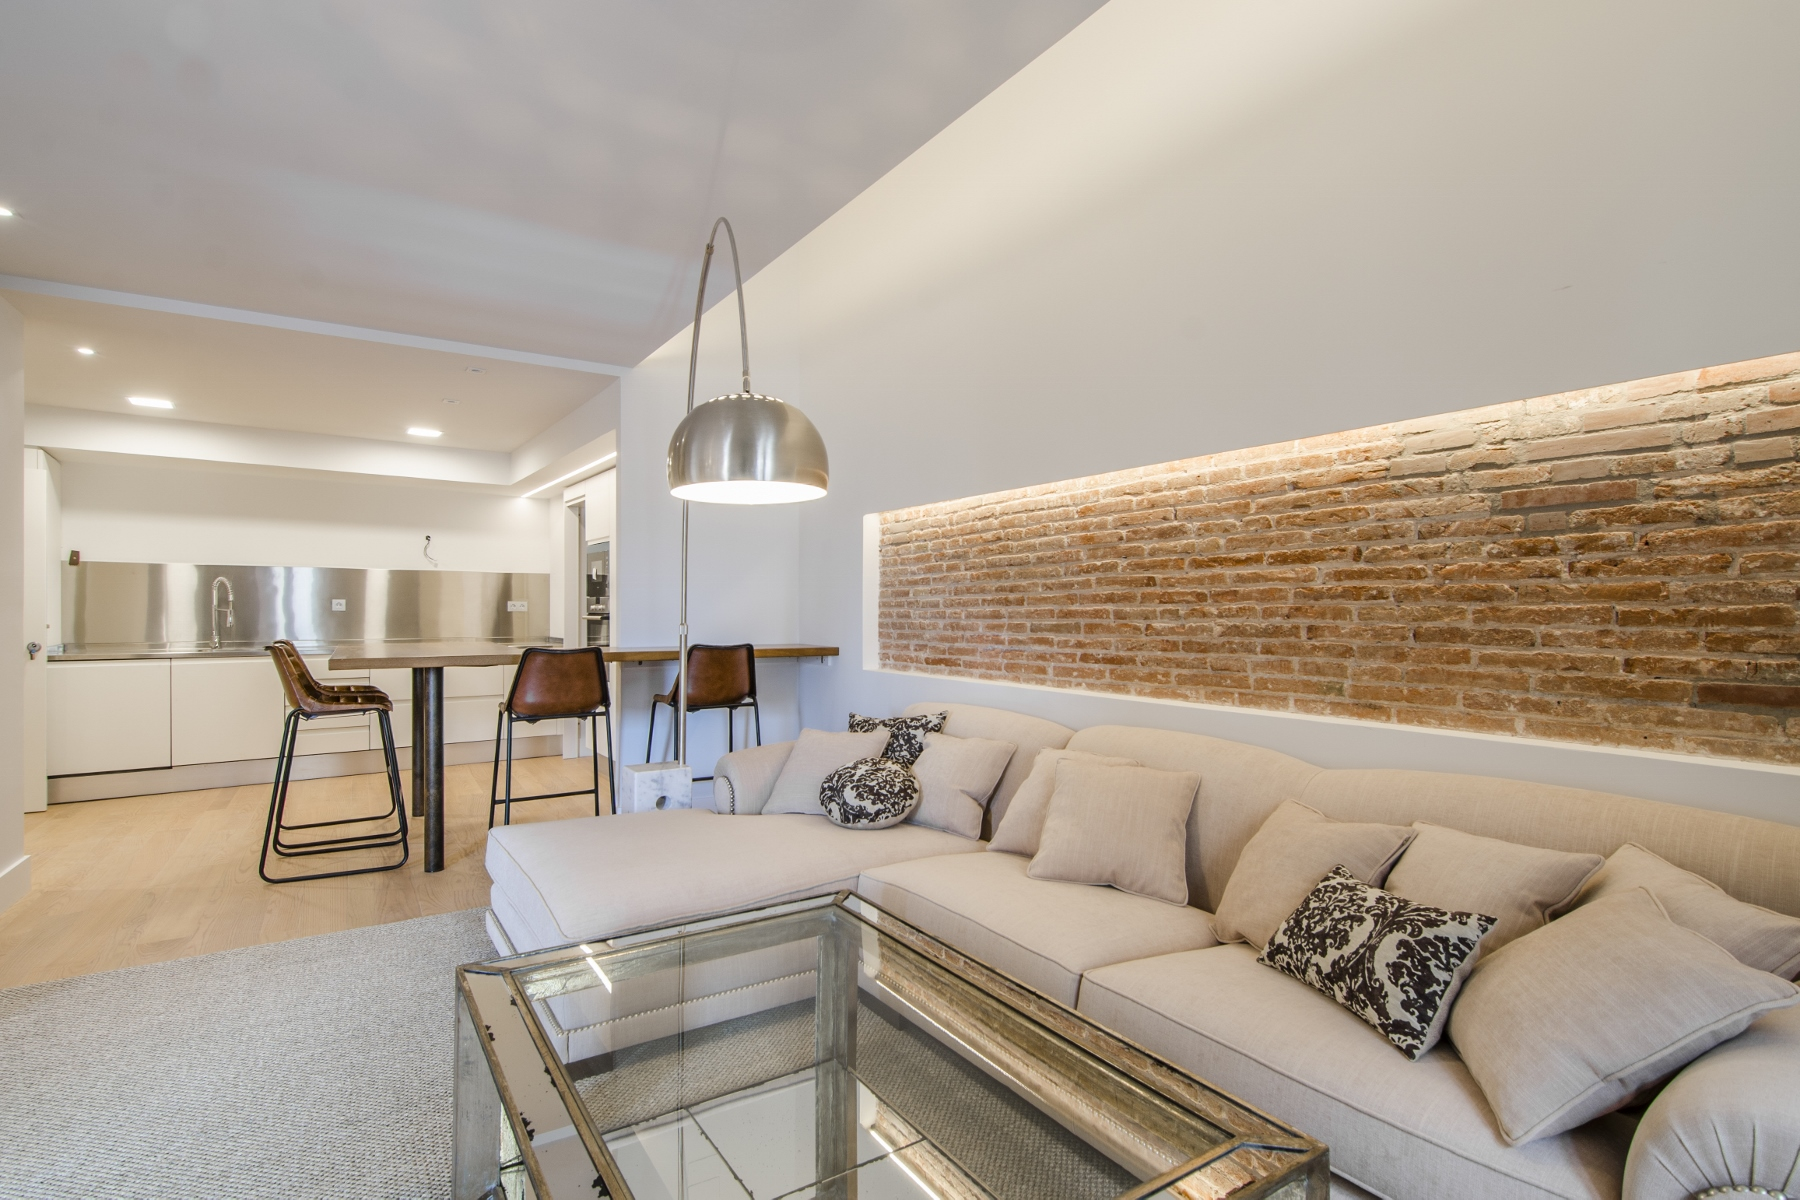 Apartment for Sale at Beautiful New Penthouse with Terraces and Views of the Cathedral Old Town Ciutat Vella, Barcelona City, Barcelona, 08002 Spain